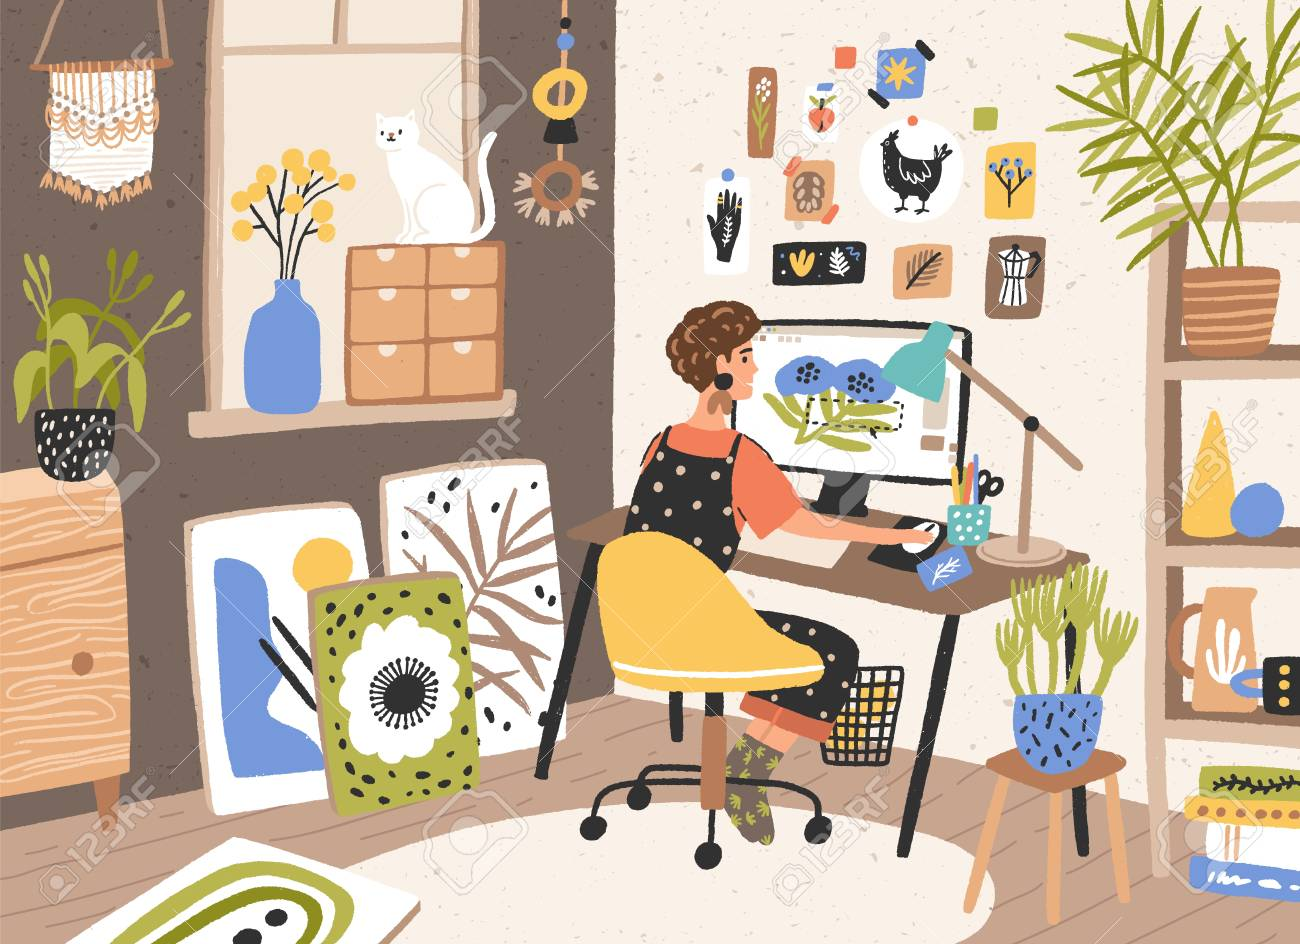 Female Graphic Designer Illustrator Or Freelance Worker Sitting Royalty Free Cliparts Vectors And Stock Illustration Image 123424844